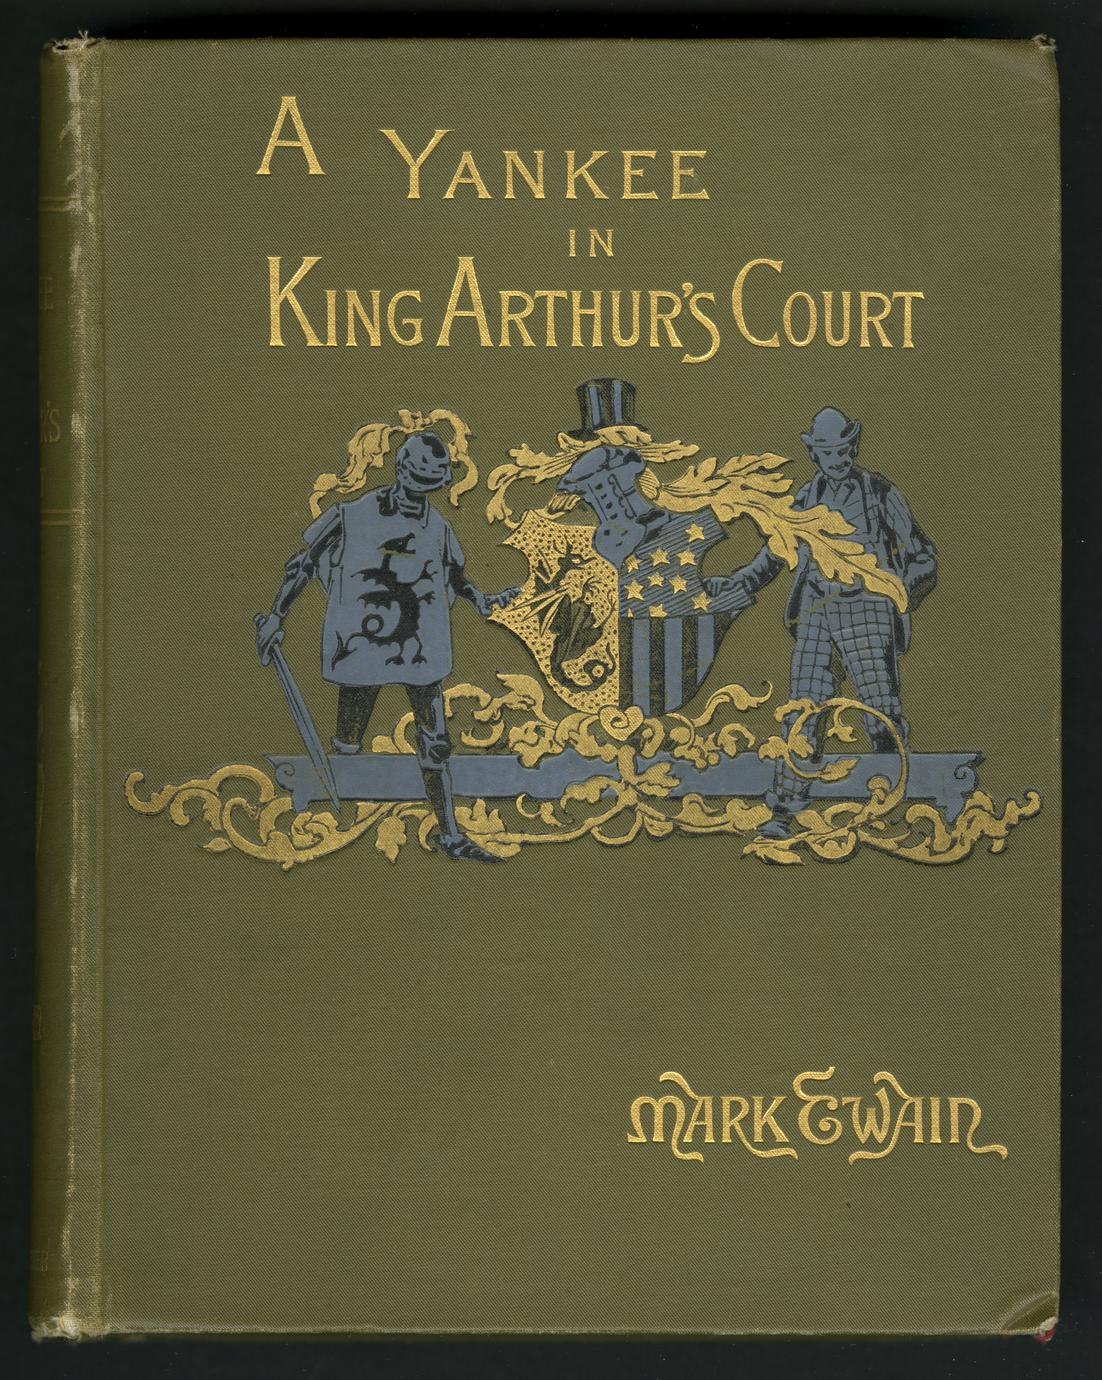 A Connecticut Yankee in King Arthur's court (1 of 3)